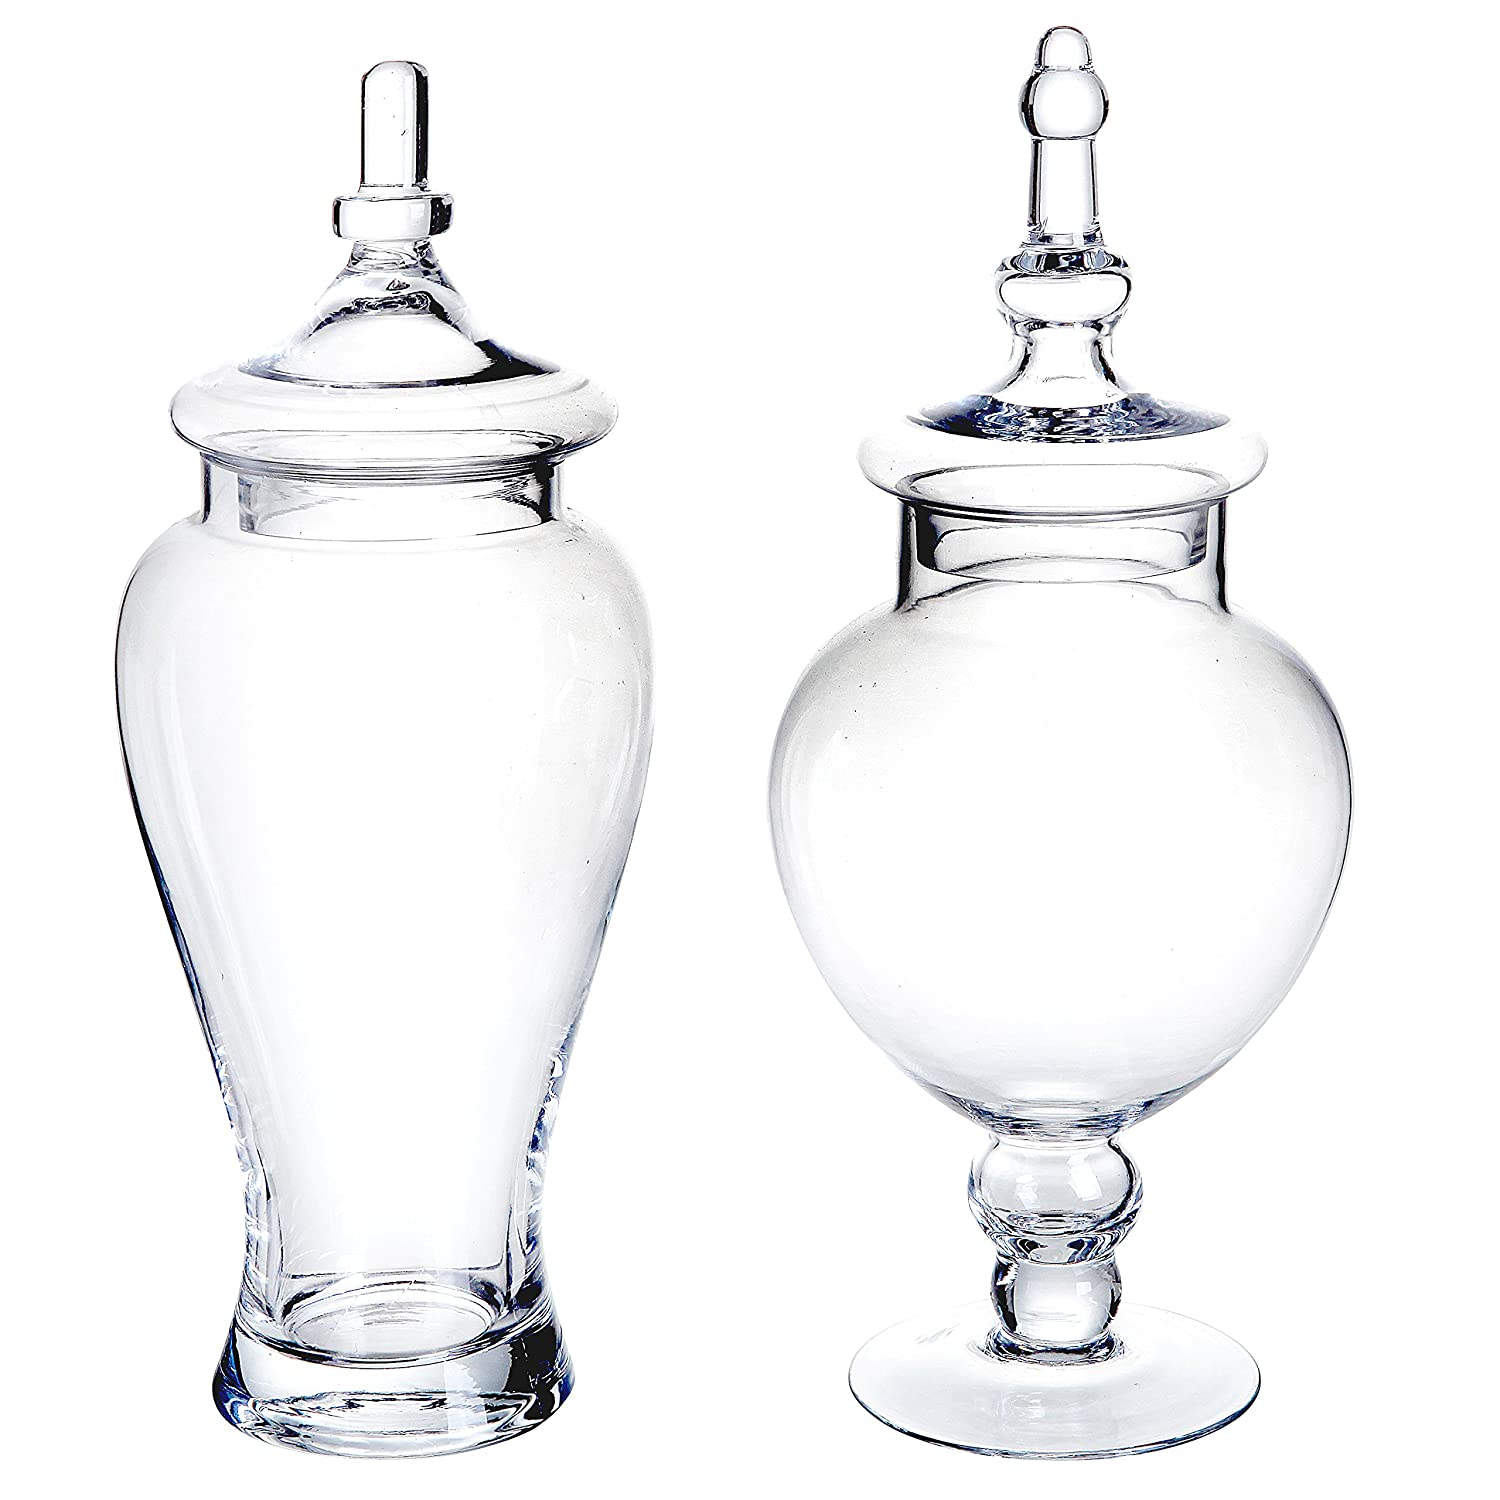 Very Amazon.com: Set of 2 Large Decorative Clear Glass Apothecary Jars  HG09